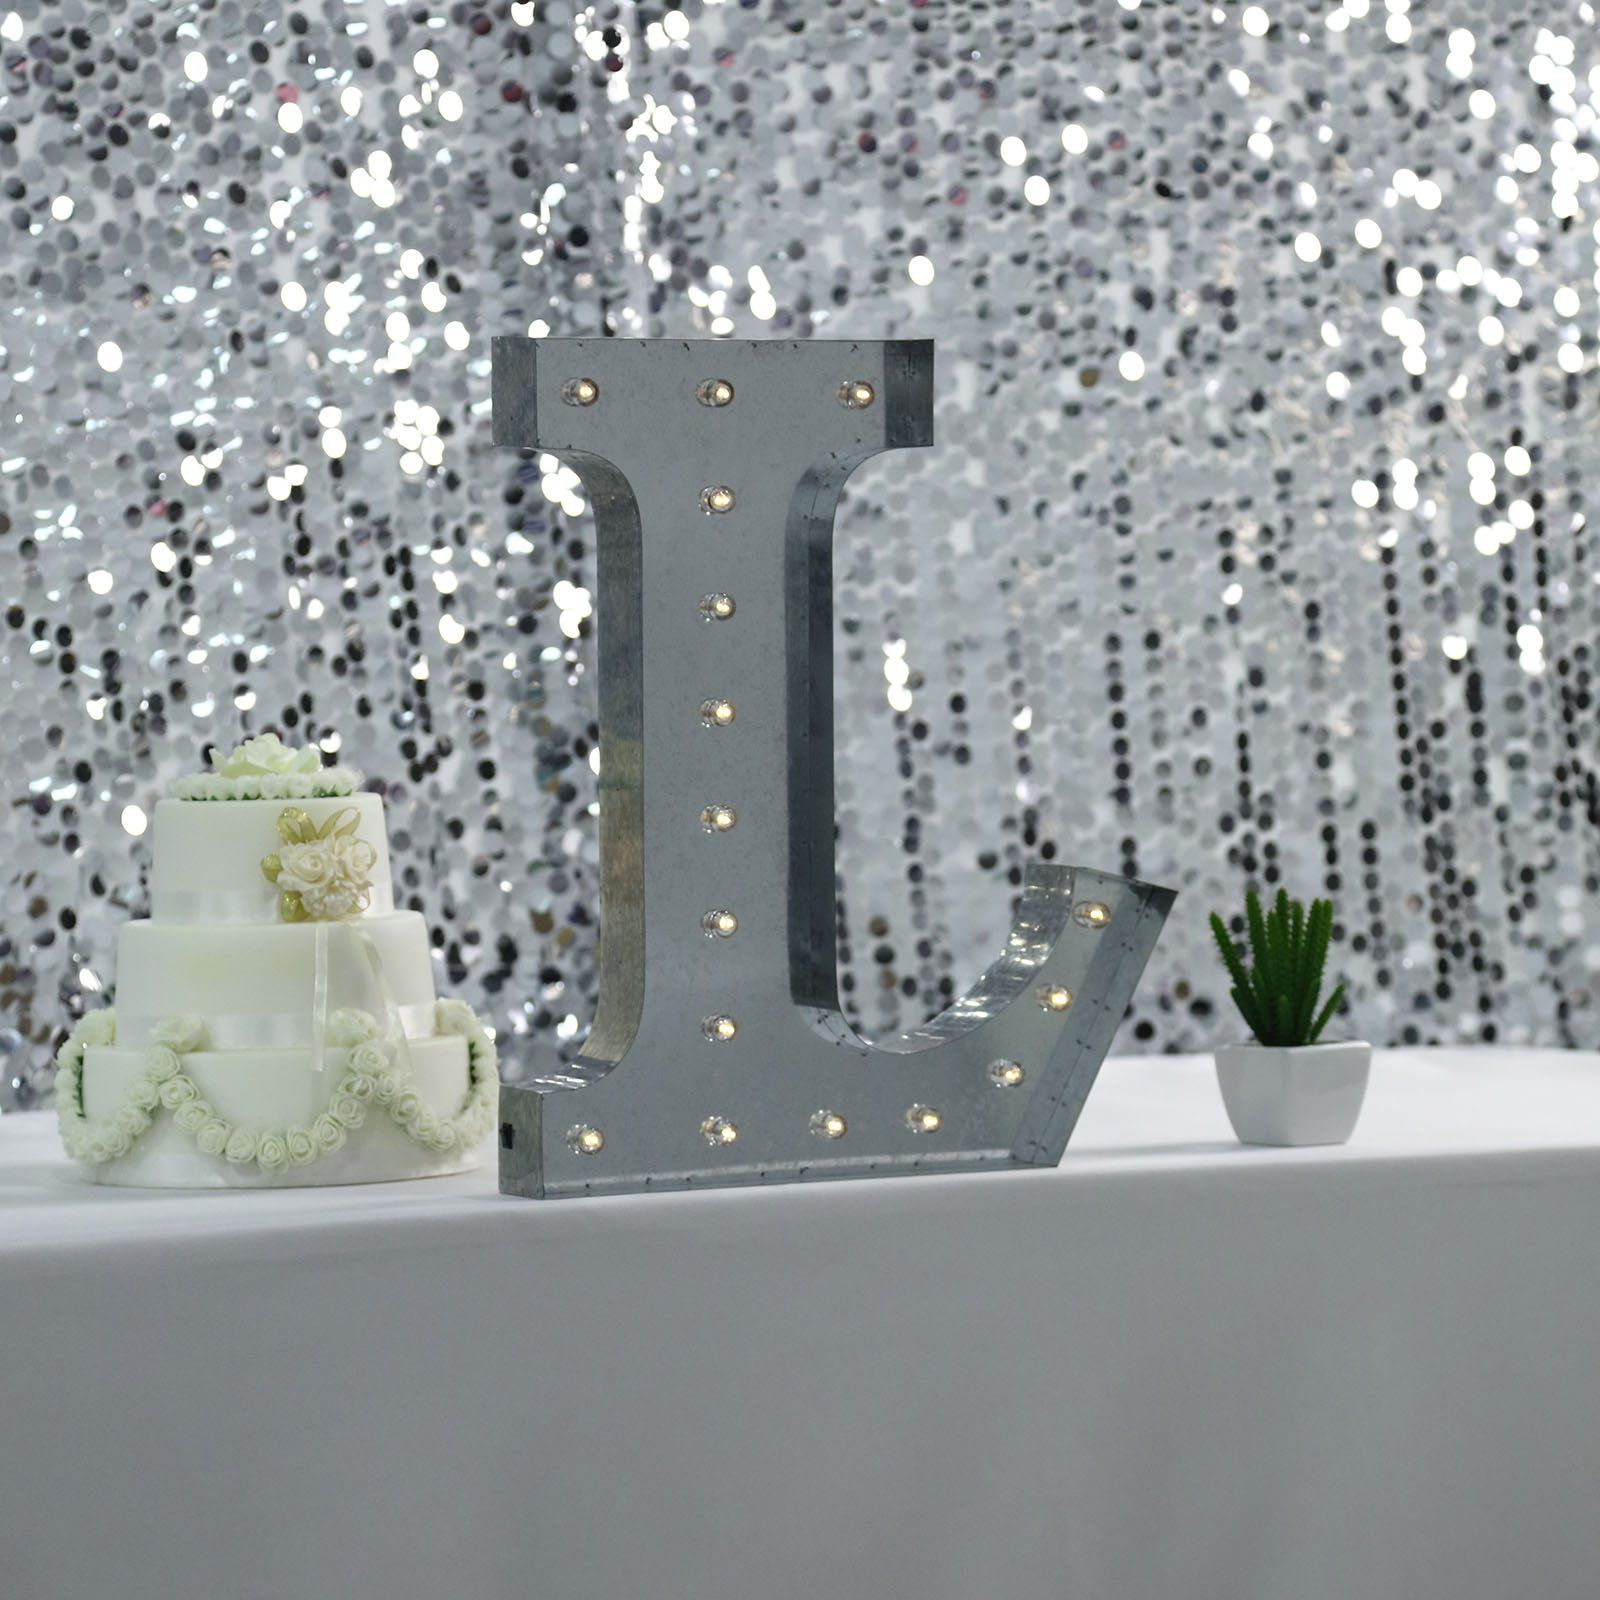 20 Vintage Metal Marquee Letter Lights Cordless With 16 Warm White Led L In 2020 Light Decorations Light Letters Marquee Letters